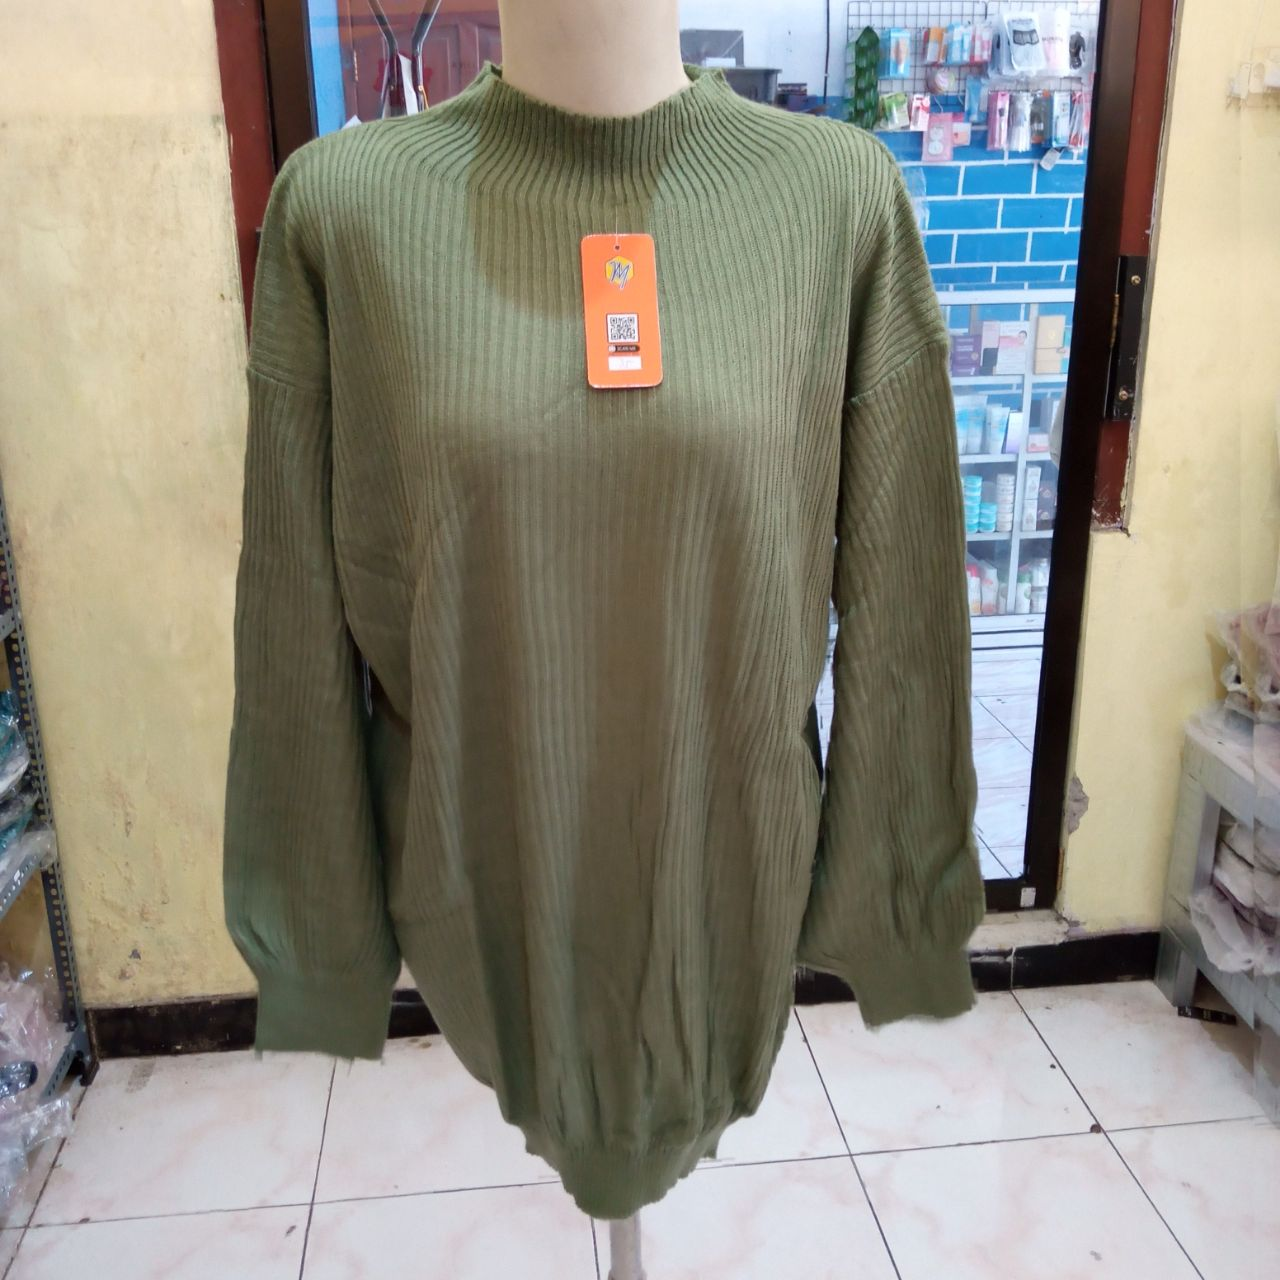 ini adalah Bayoneta Sweater Mint, size: Extra Large, material: Knit, color: green mint, brand: Rajutindonesi, age_group: all ages, gender: female